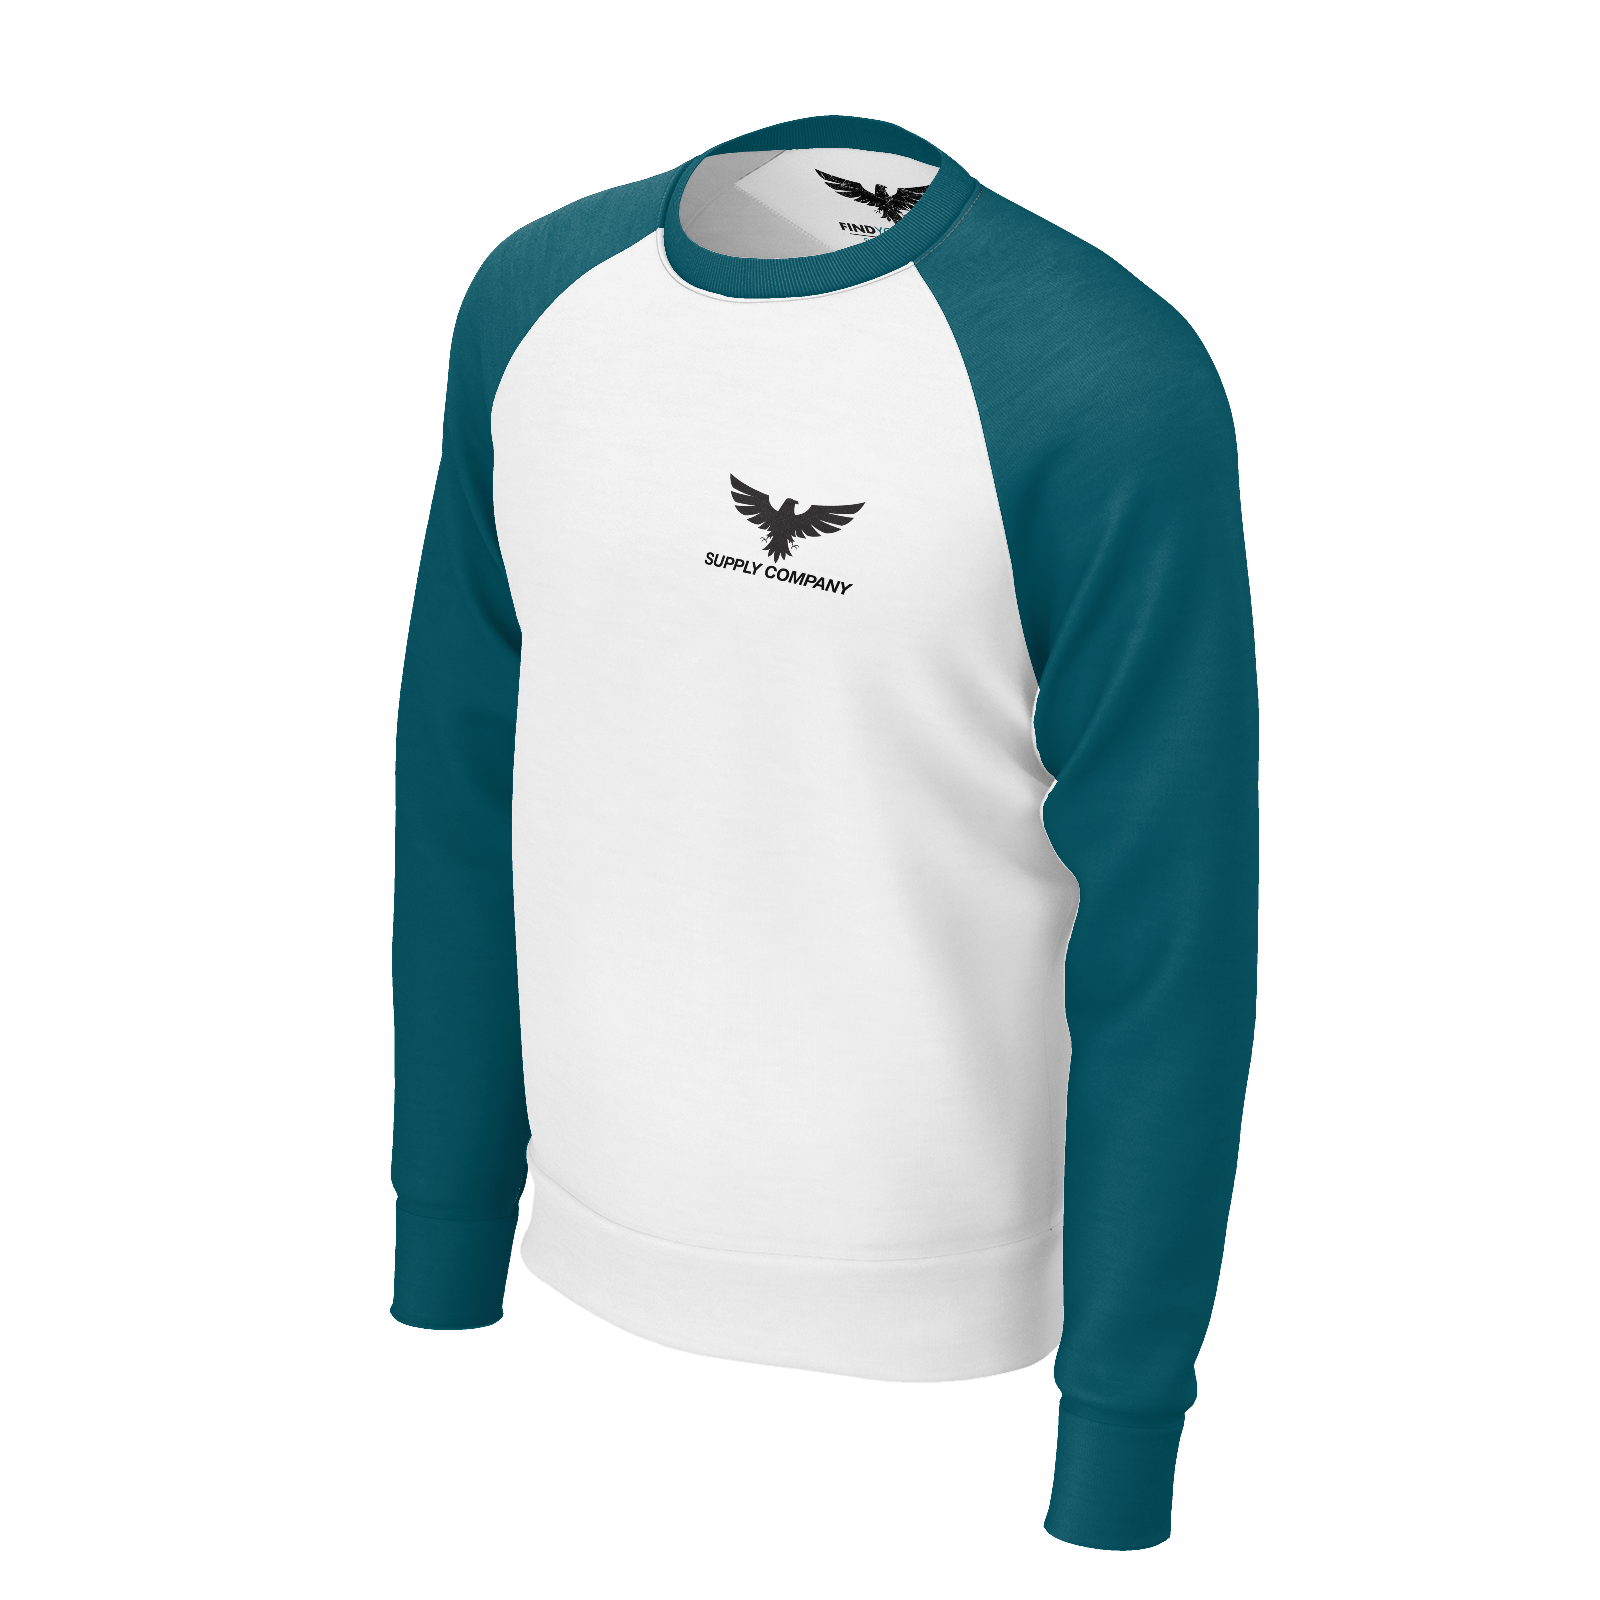 Men's Fishing Supply Co. Sustainable Crewneck Raglan Sweatshirt Long Sleeve - Find Your Coast Supply Co.